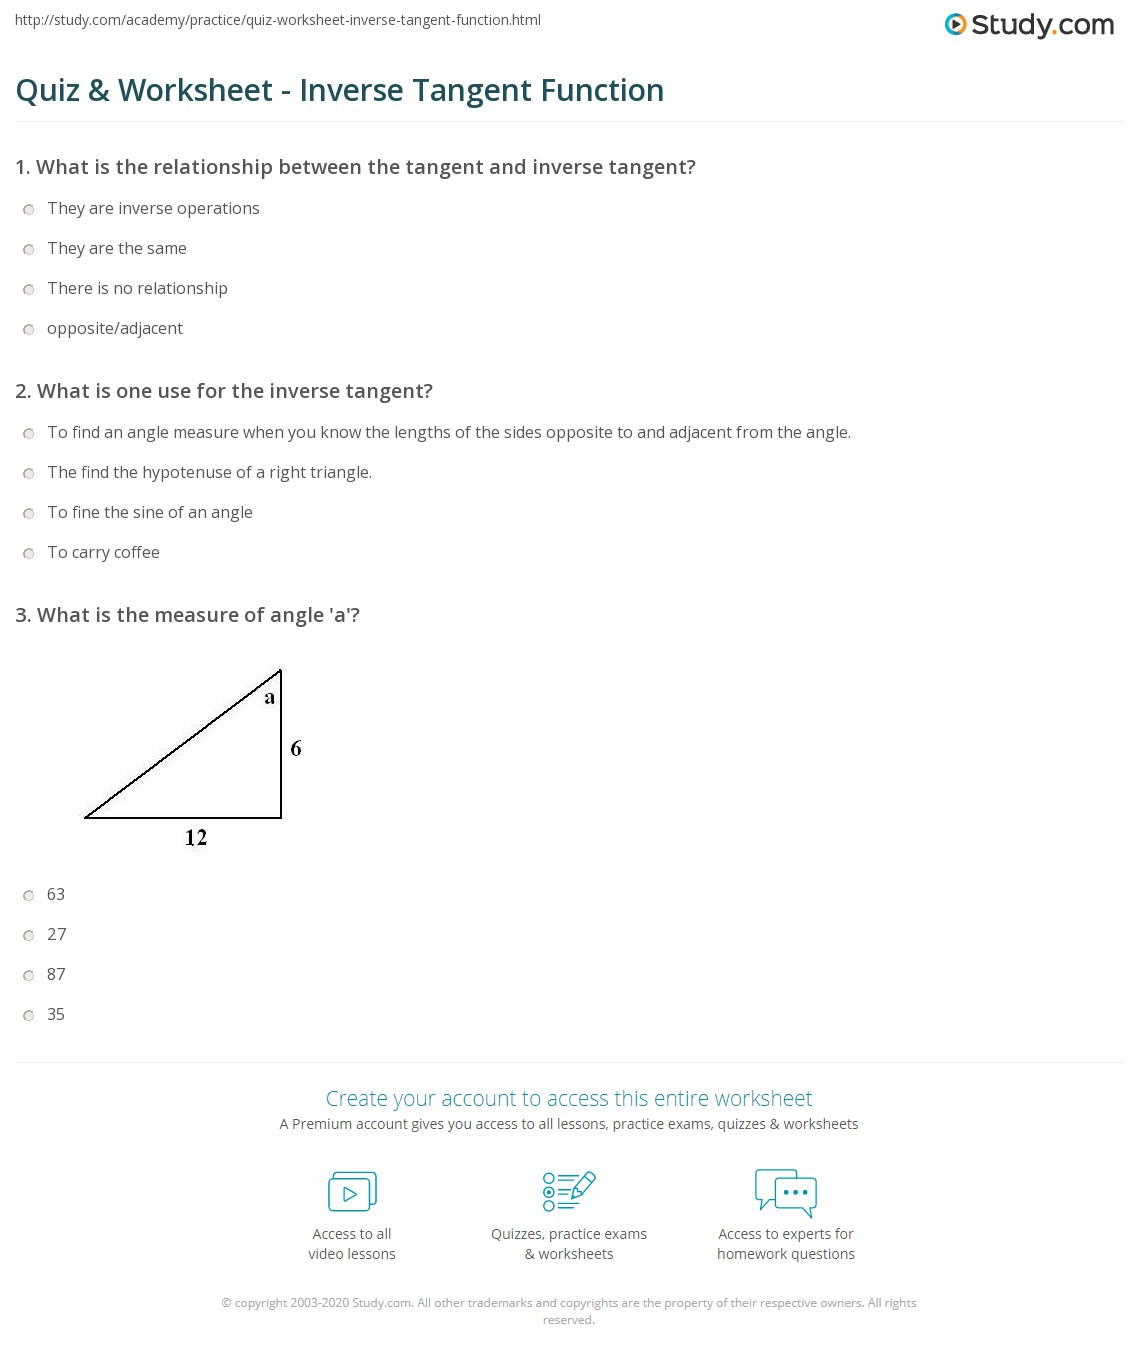 Worksheets Sine Cosine And Tangent Practice Worksheet Answers graphing sine and cosine functions worksheet with answers tangent the best most litude period for worksheet